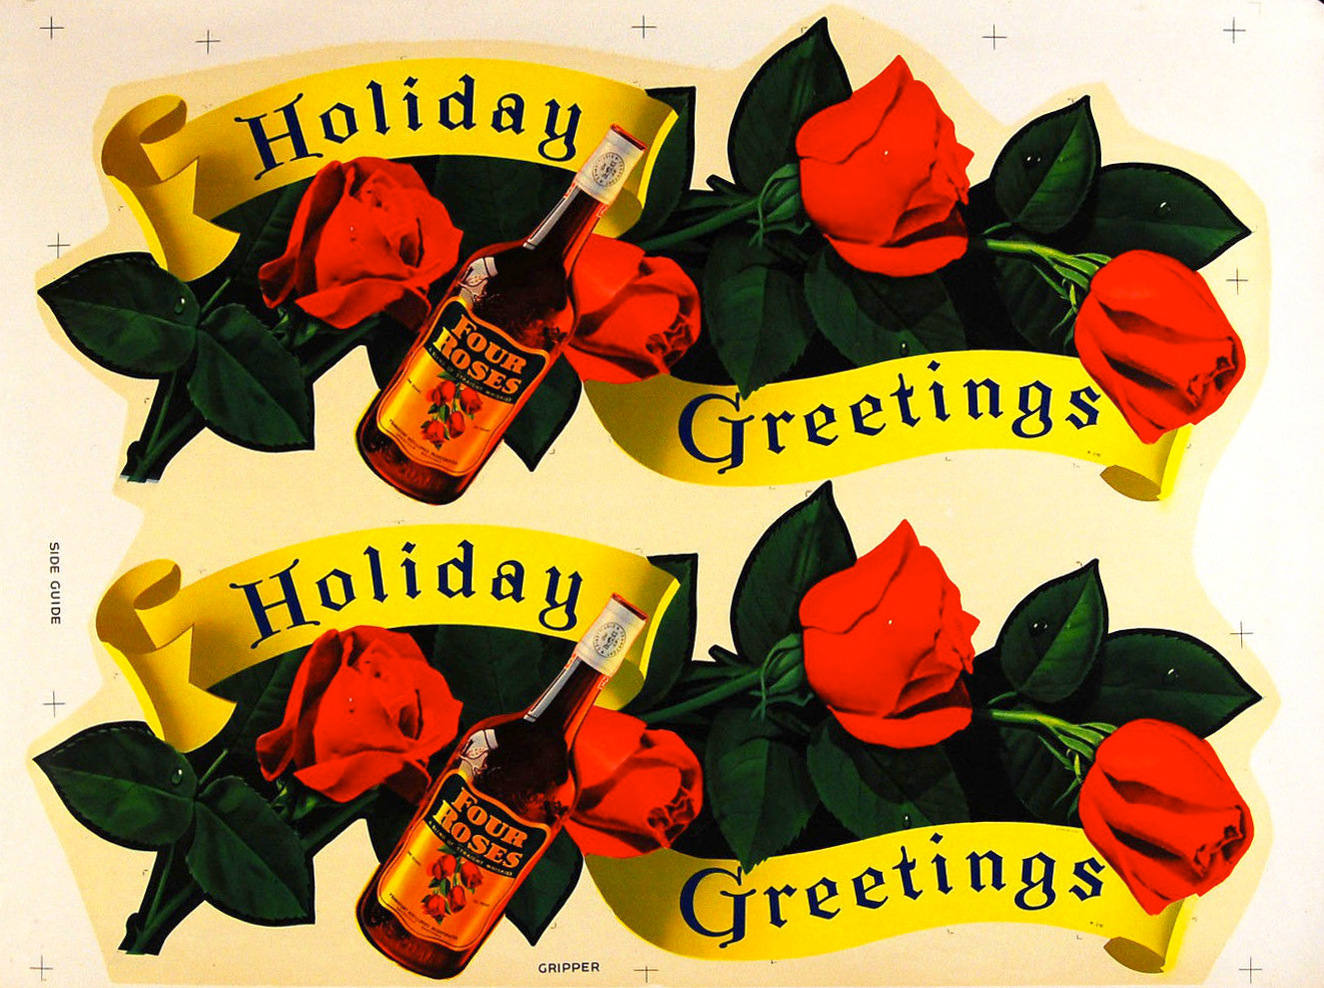 1940s in-store advertising for Four Roses Bourbon